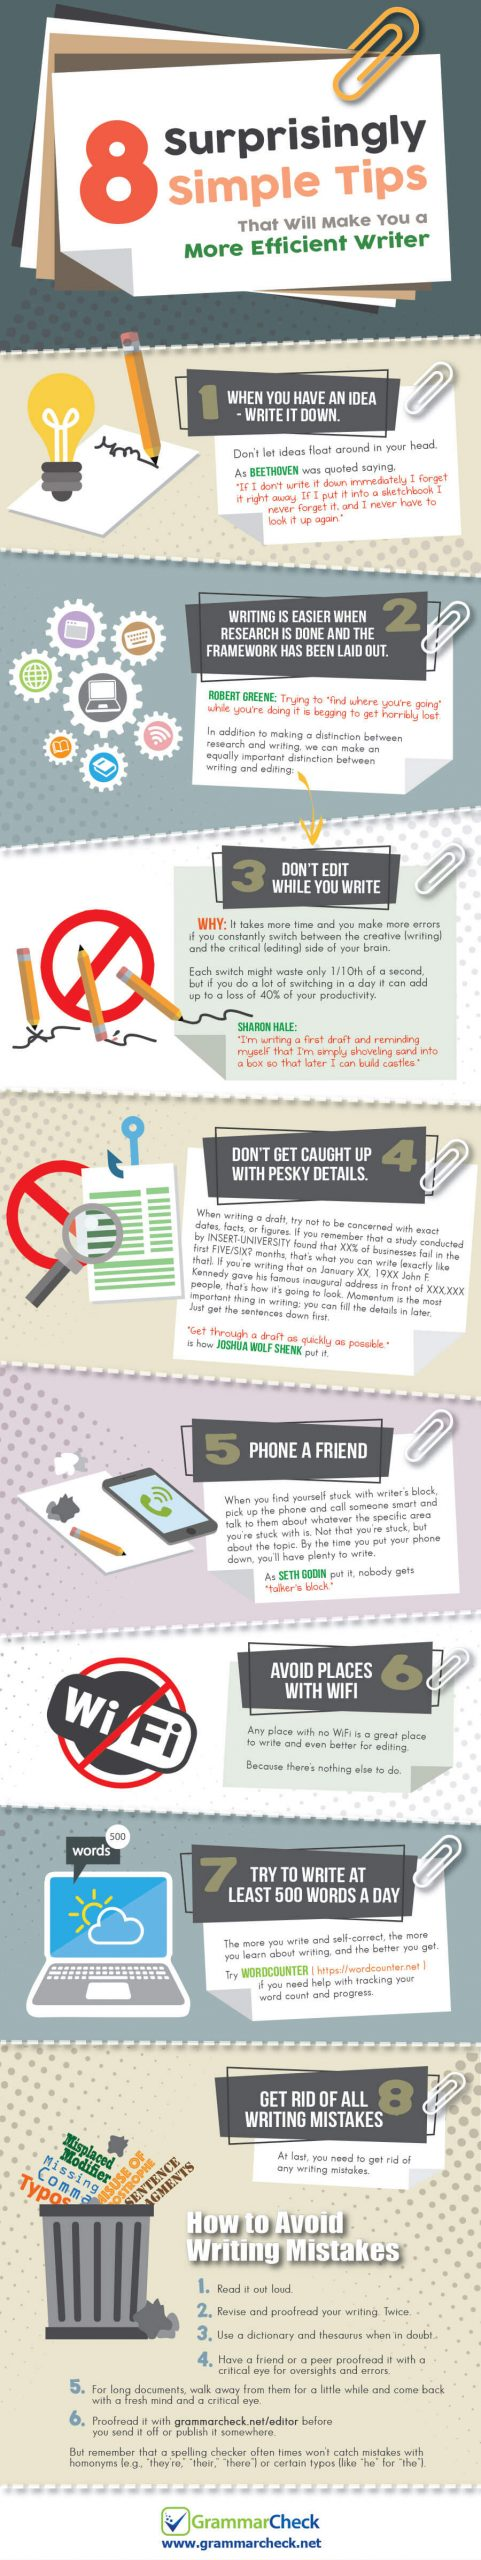 writing tips infographic compressed